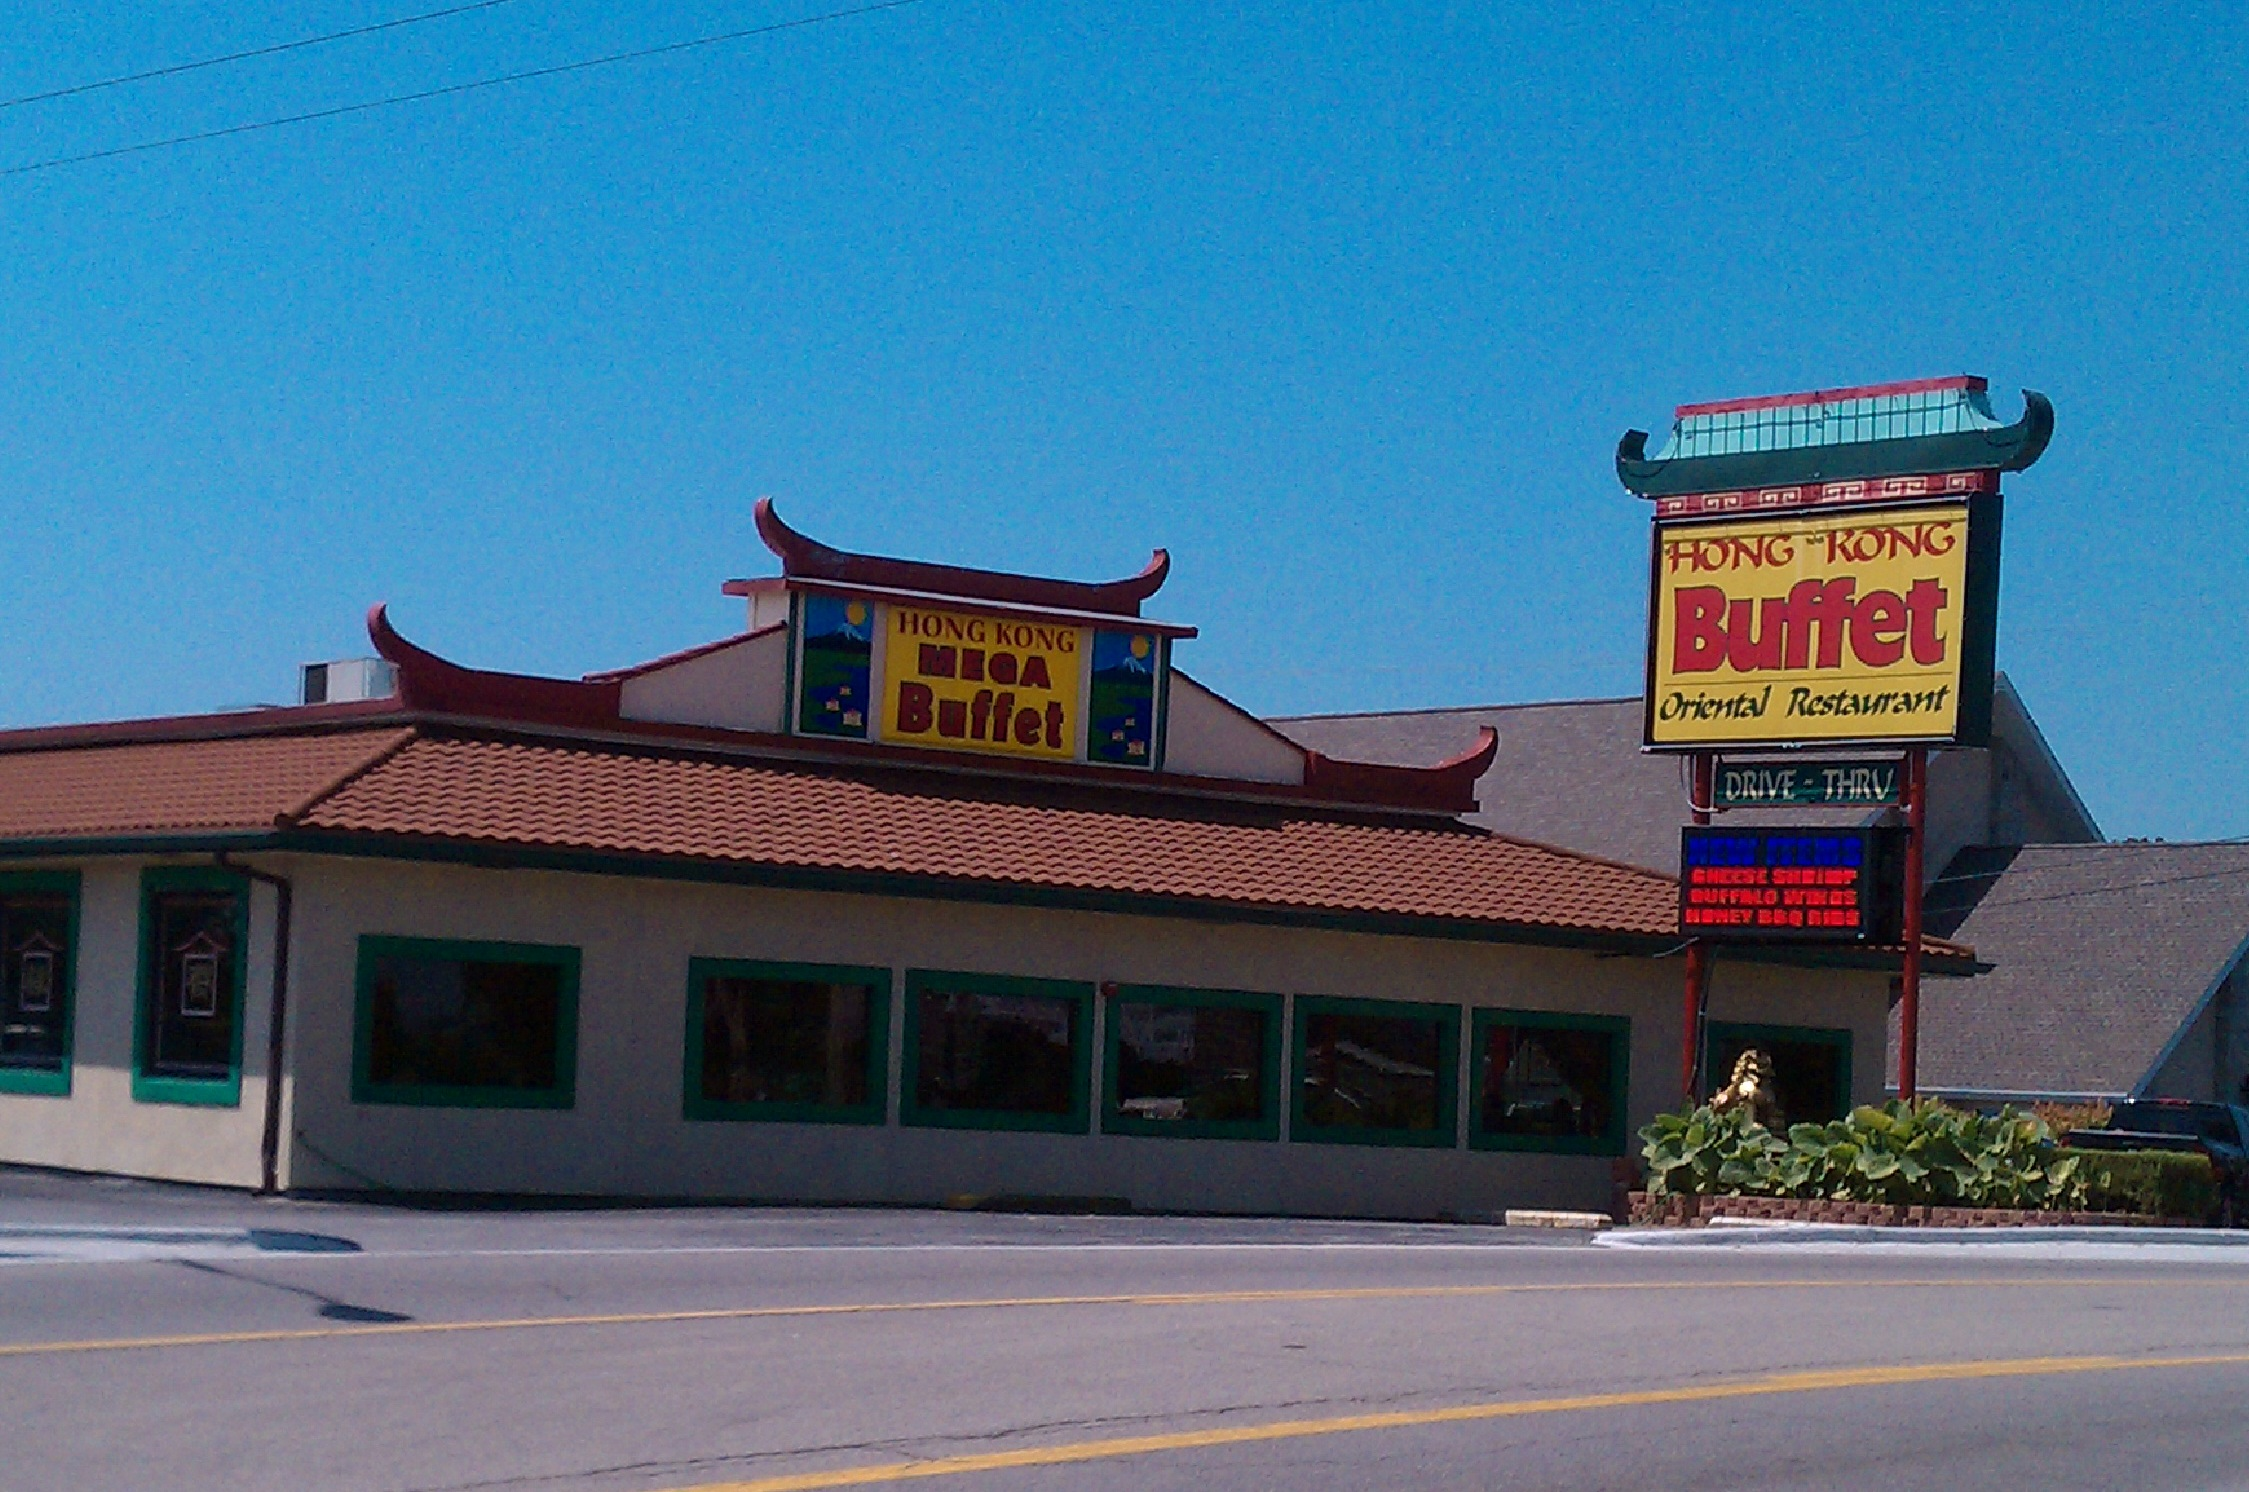 Hong Kong Buffet Hot Spots Of Branson Missouri